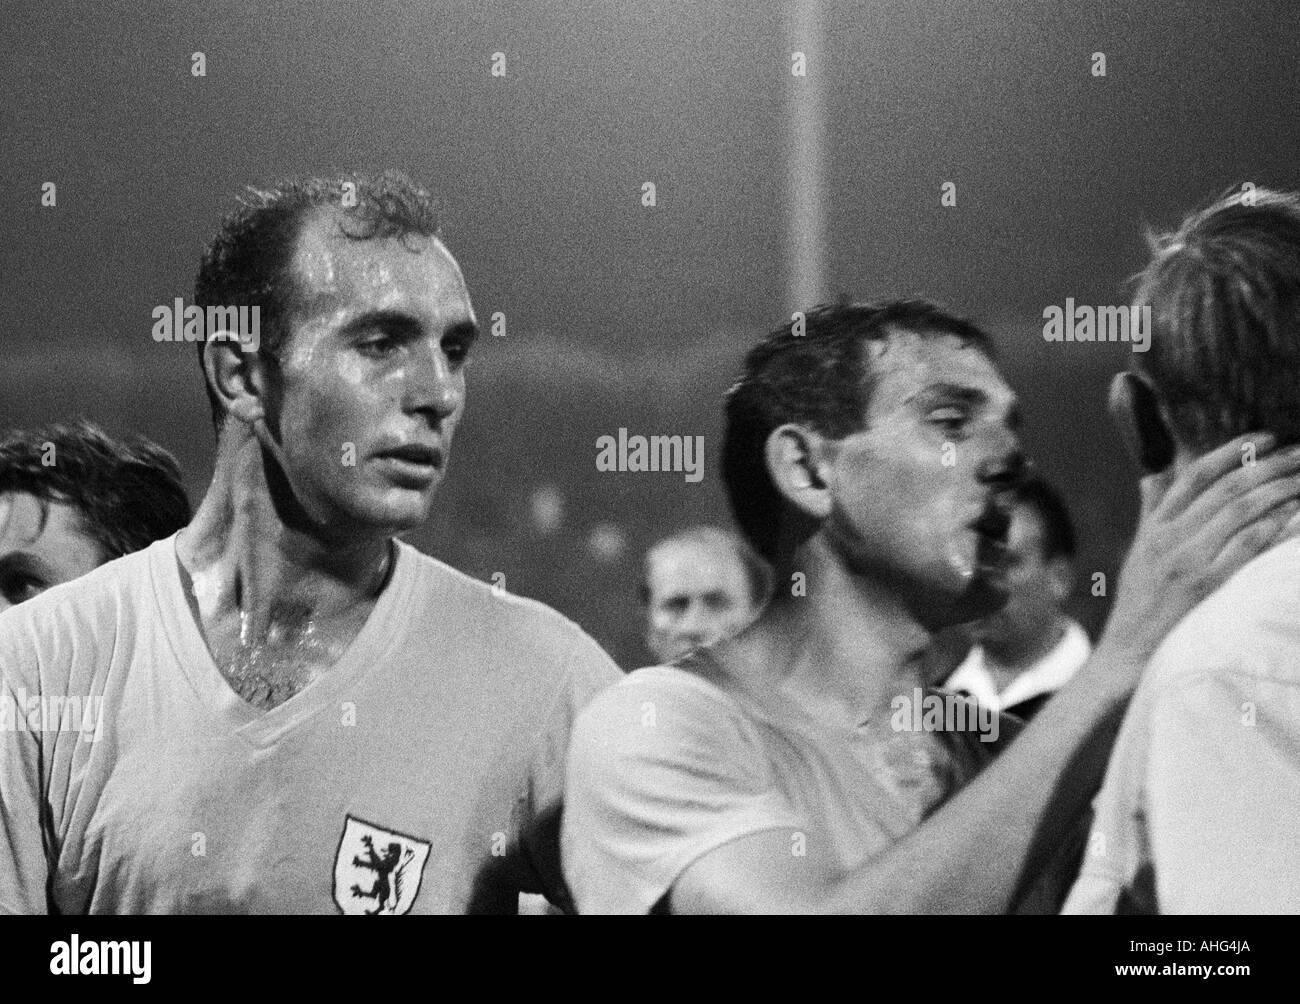 football, Bundesliga, 1967/1968, MSV Duisburg versus Eintracht Brunswick 2:3, Wedau Stadium in Duisburg, football players, left Joachim Baese, right Walter Schmidt (both Braunschweig) - Stock Image